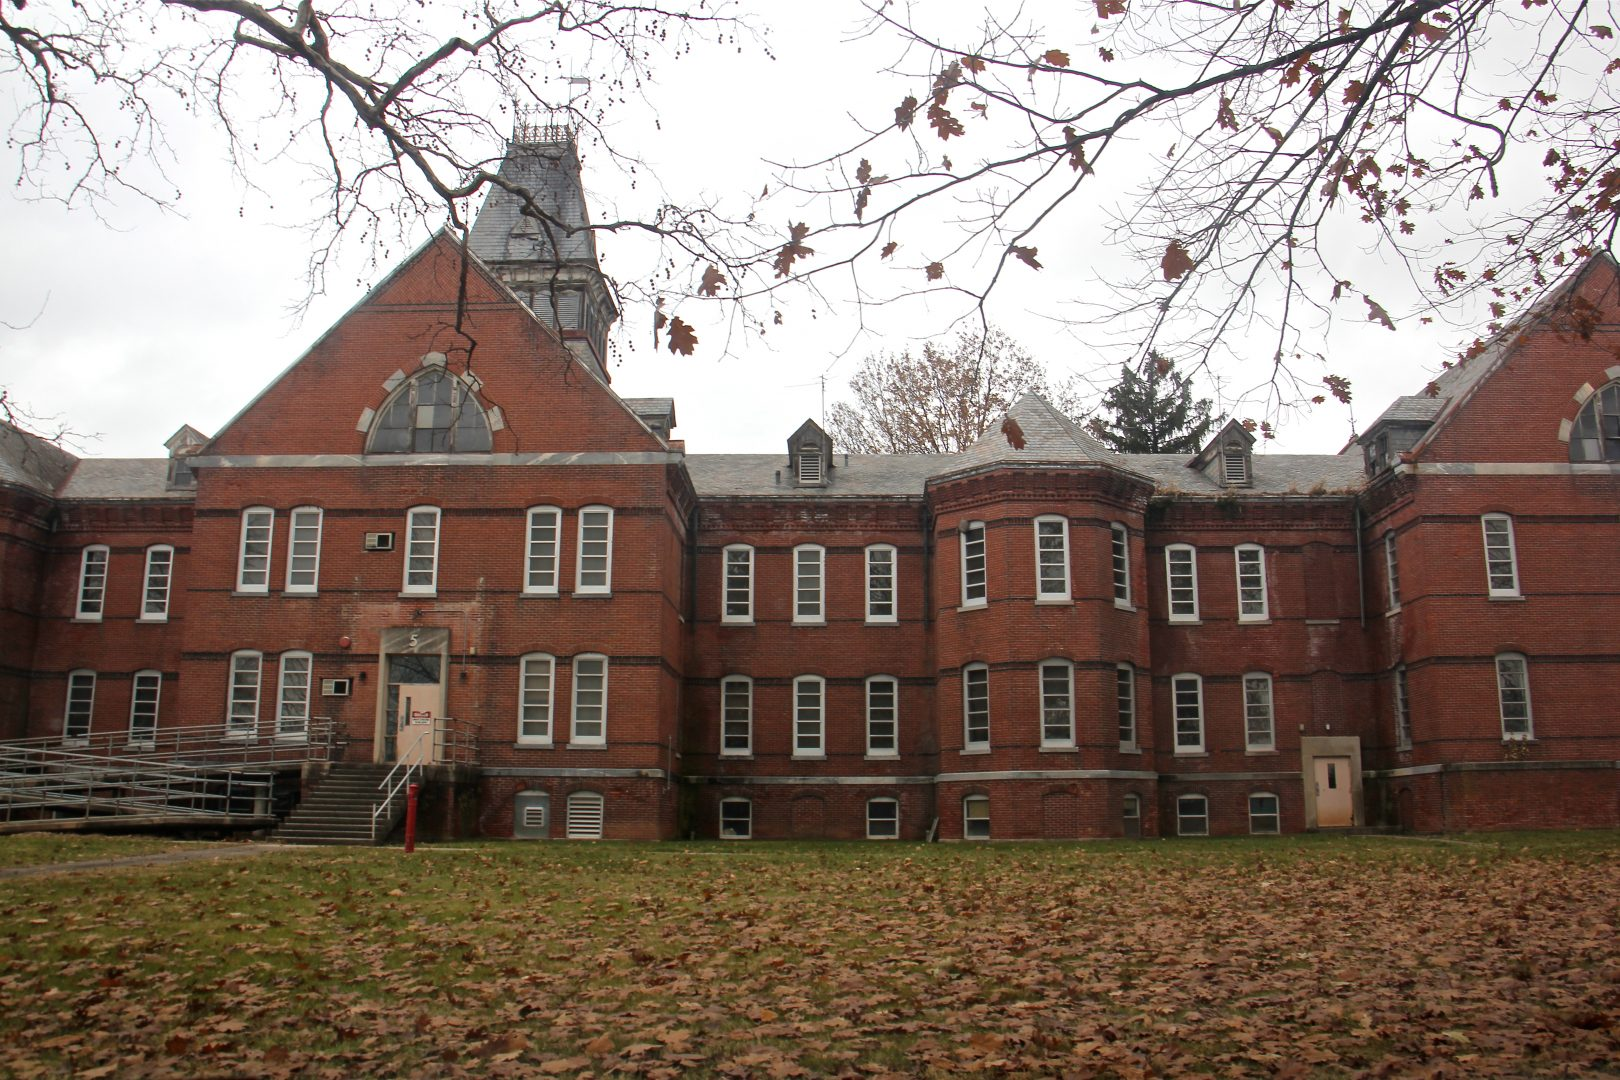 Building 5 on the grounds of Norristown State Hospital.